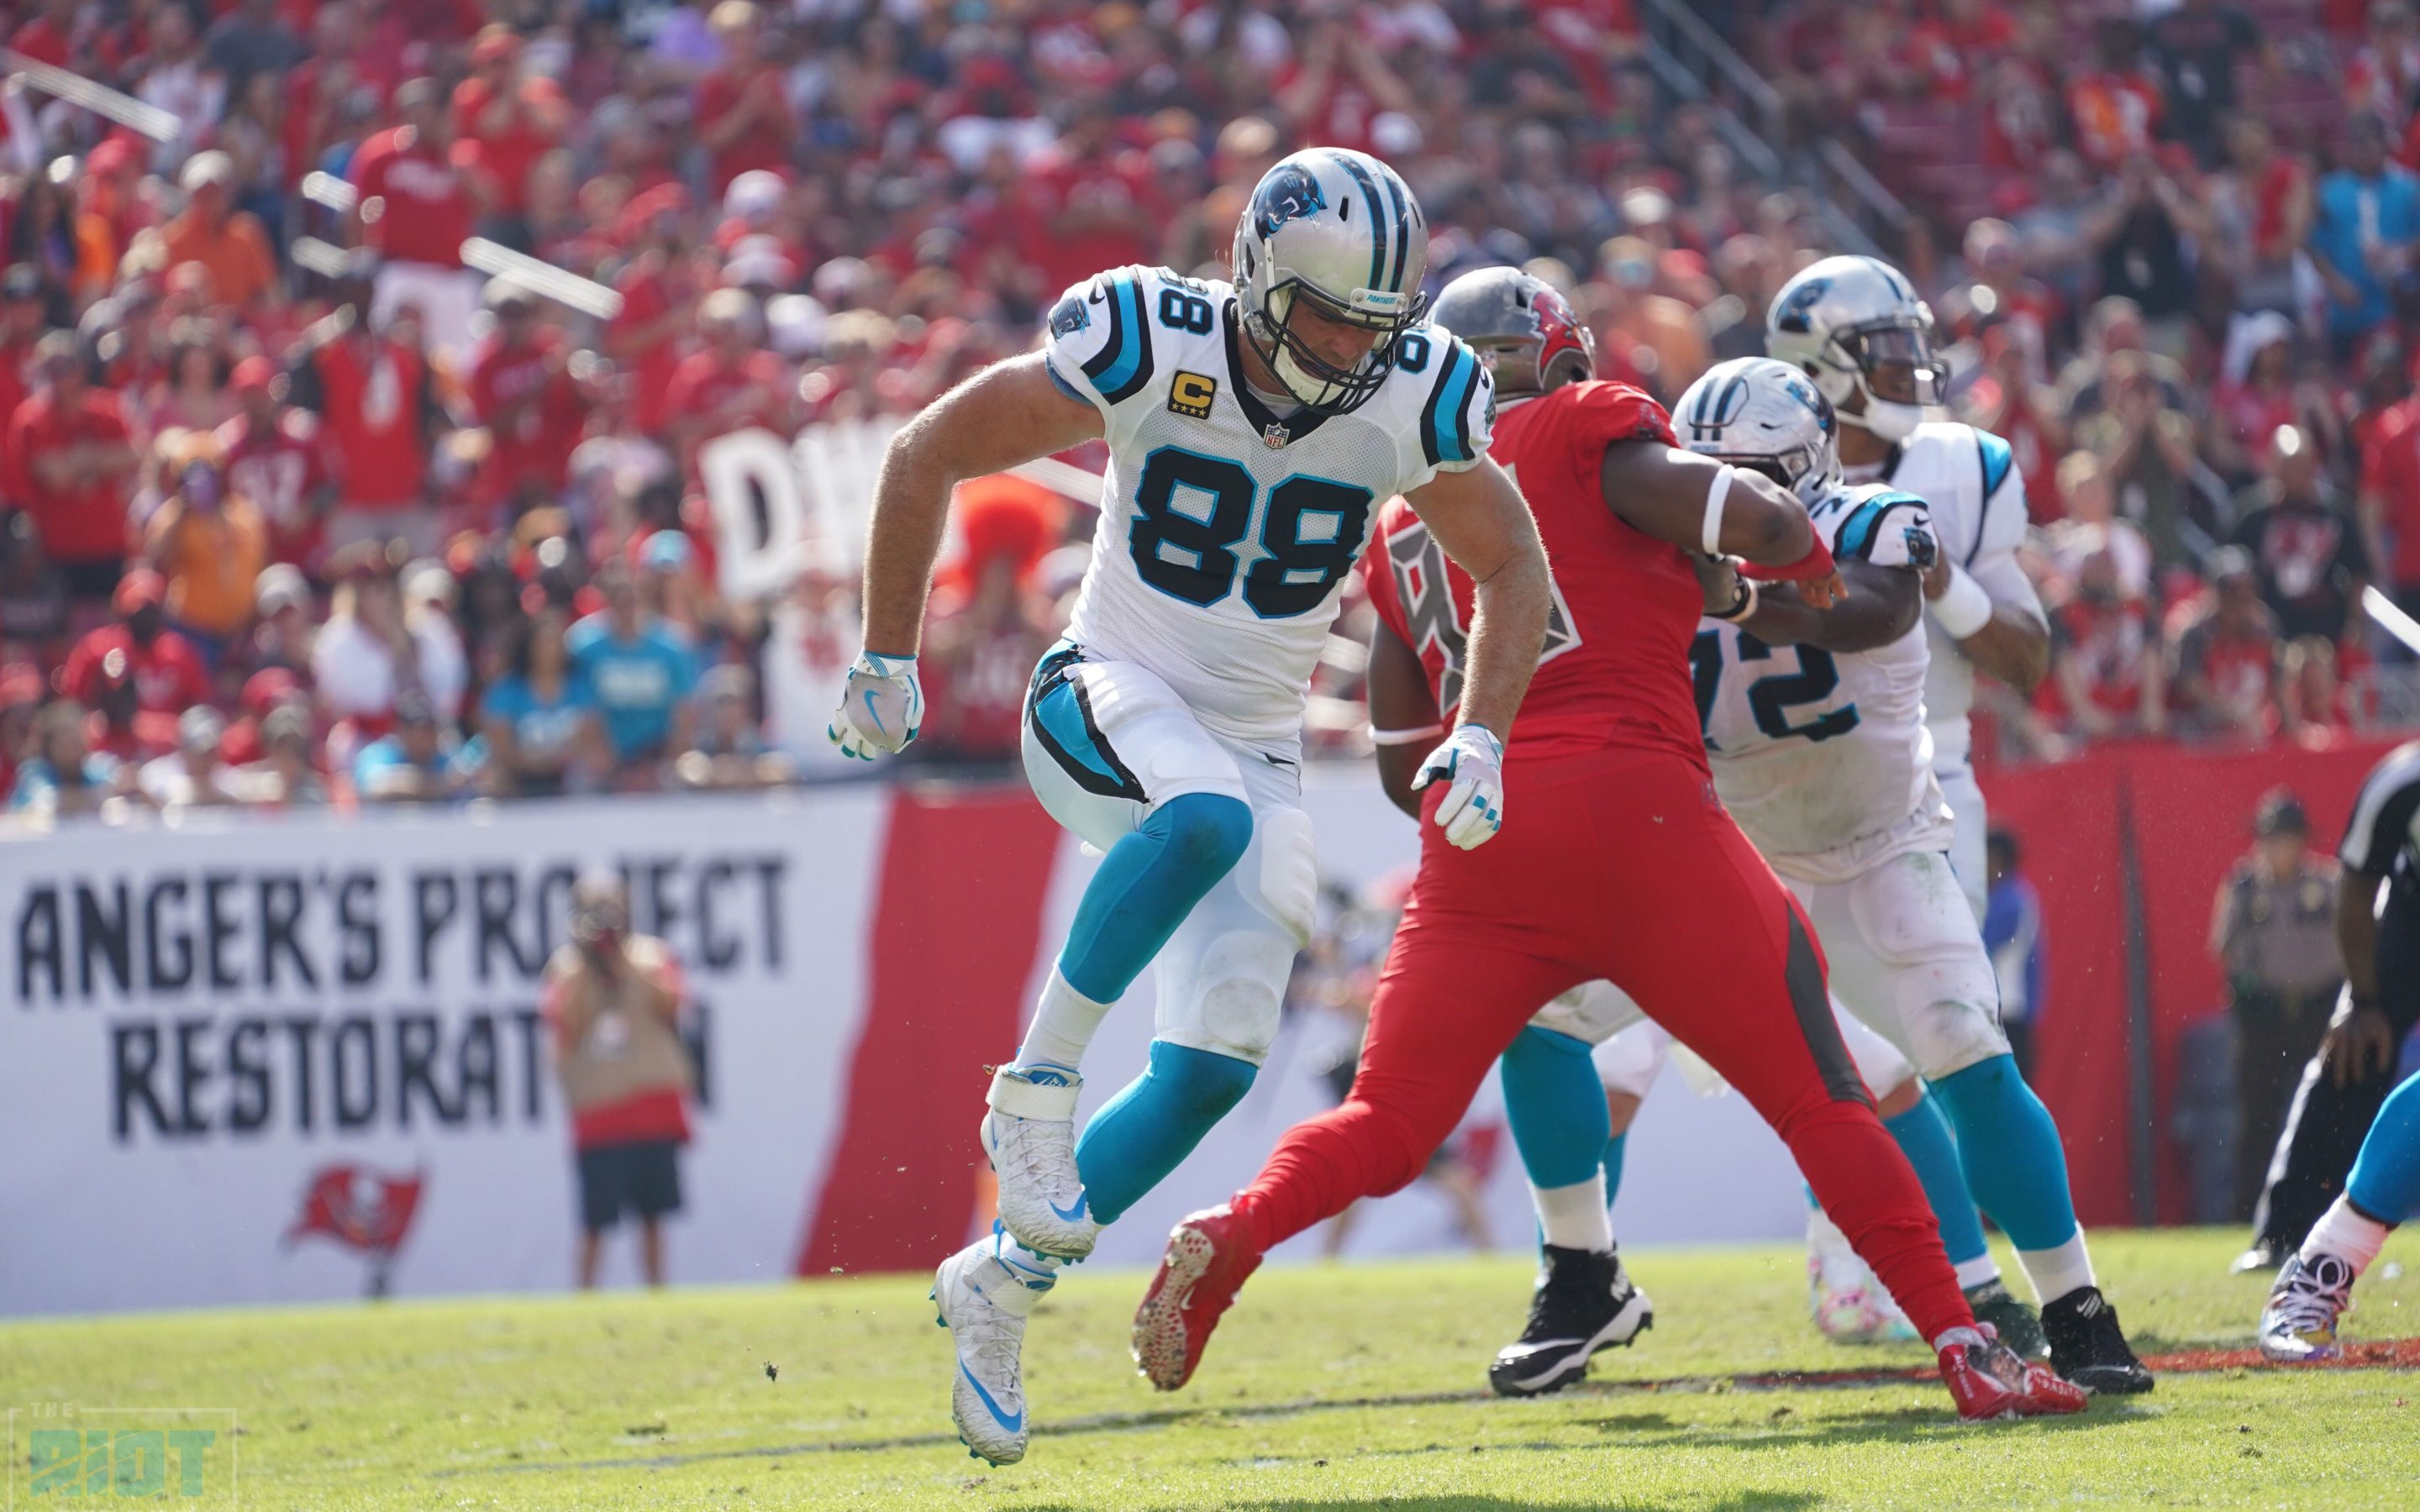 Greg Olsen Ruptures Plantar Fascia, Likely Out For Season